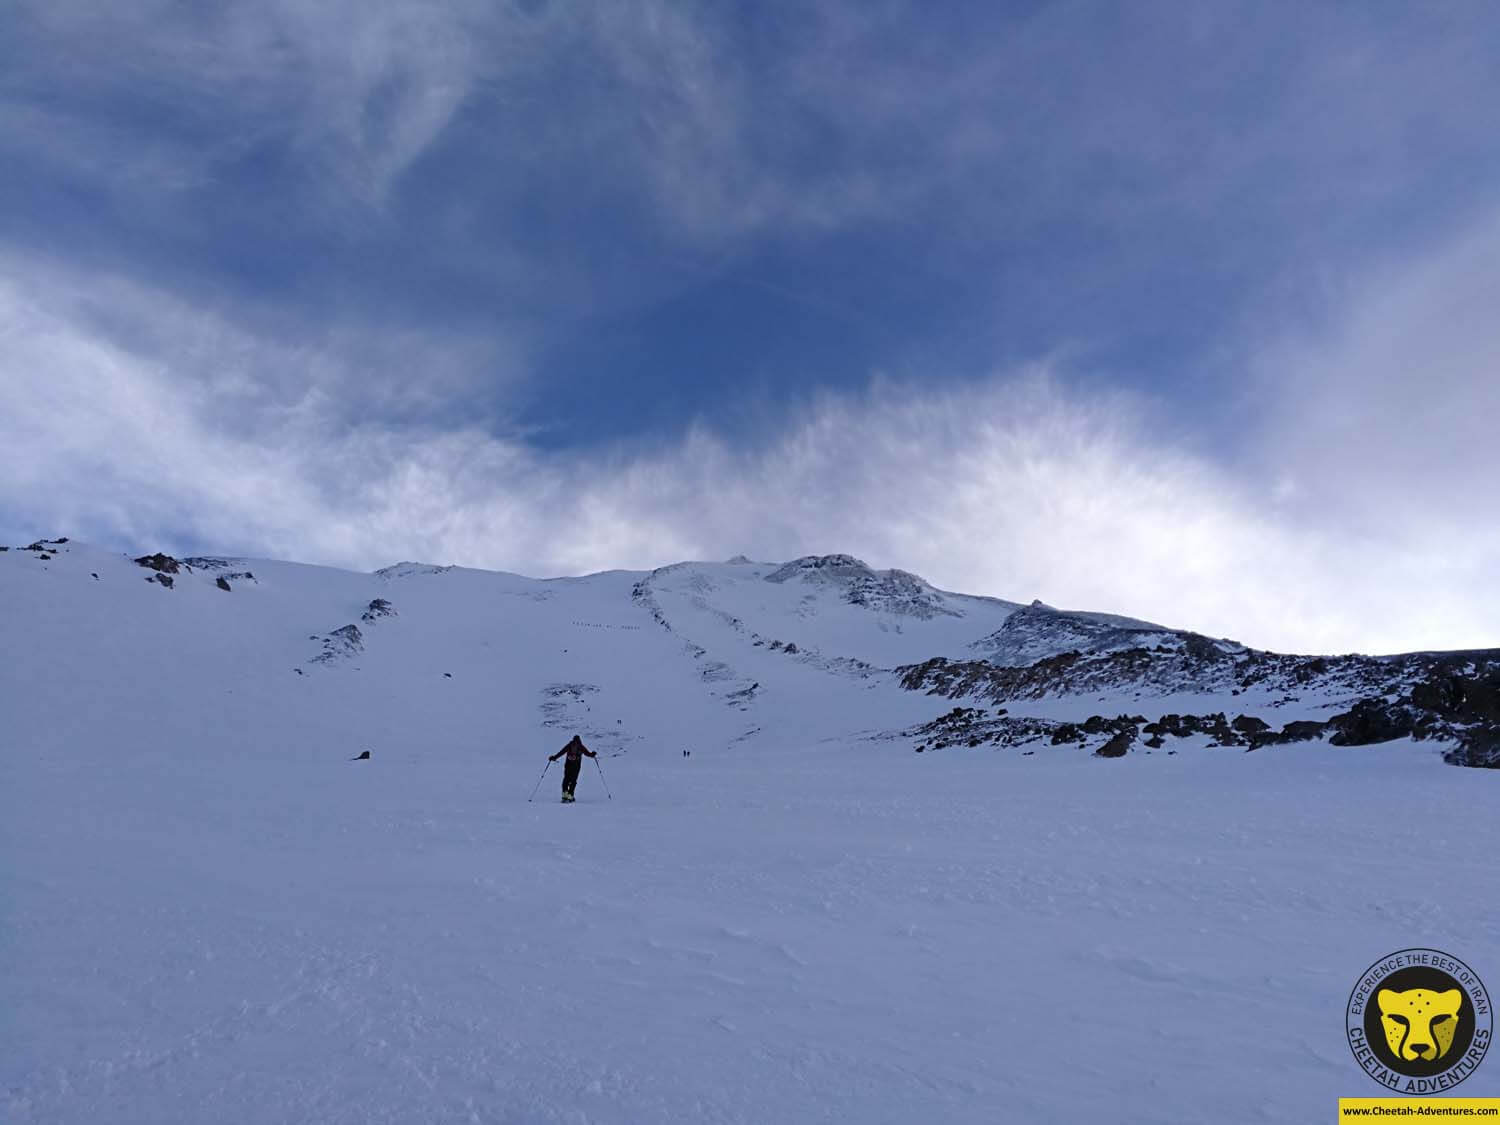 6-1 Damavand Summit Day, Ski touring from Bargah-e Sevom Hut